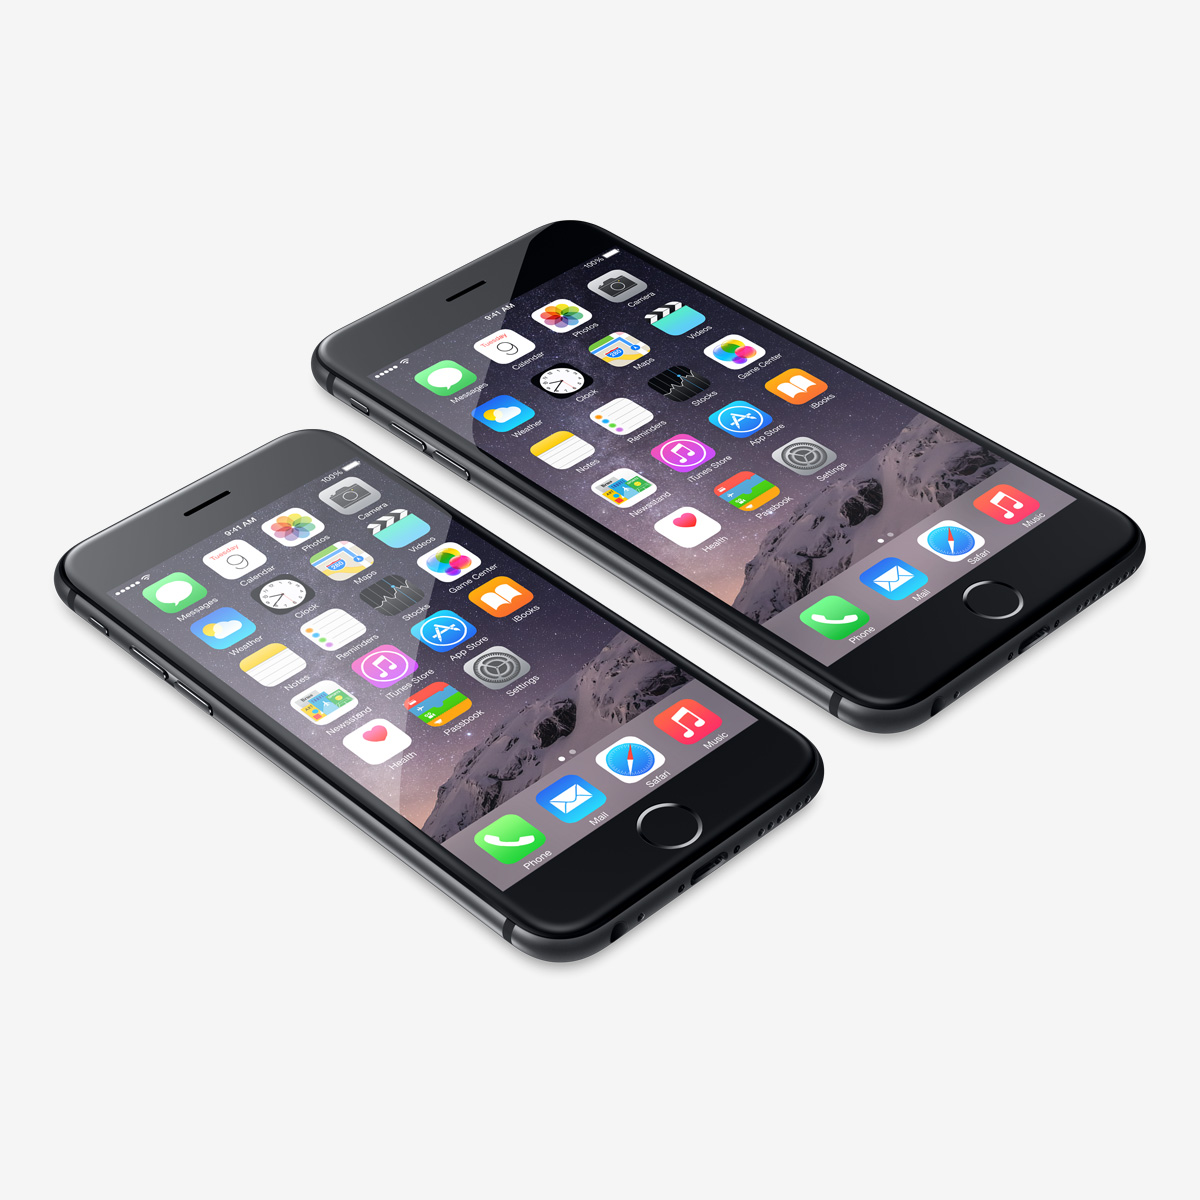 KGI: 'iPhone 6s' to feature 5MP front-facing camera, but no sapphire lens